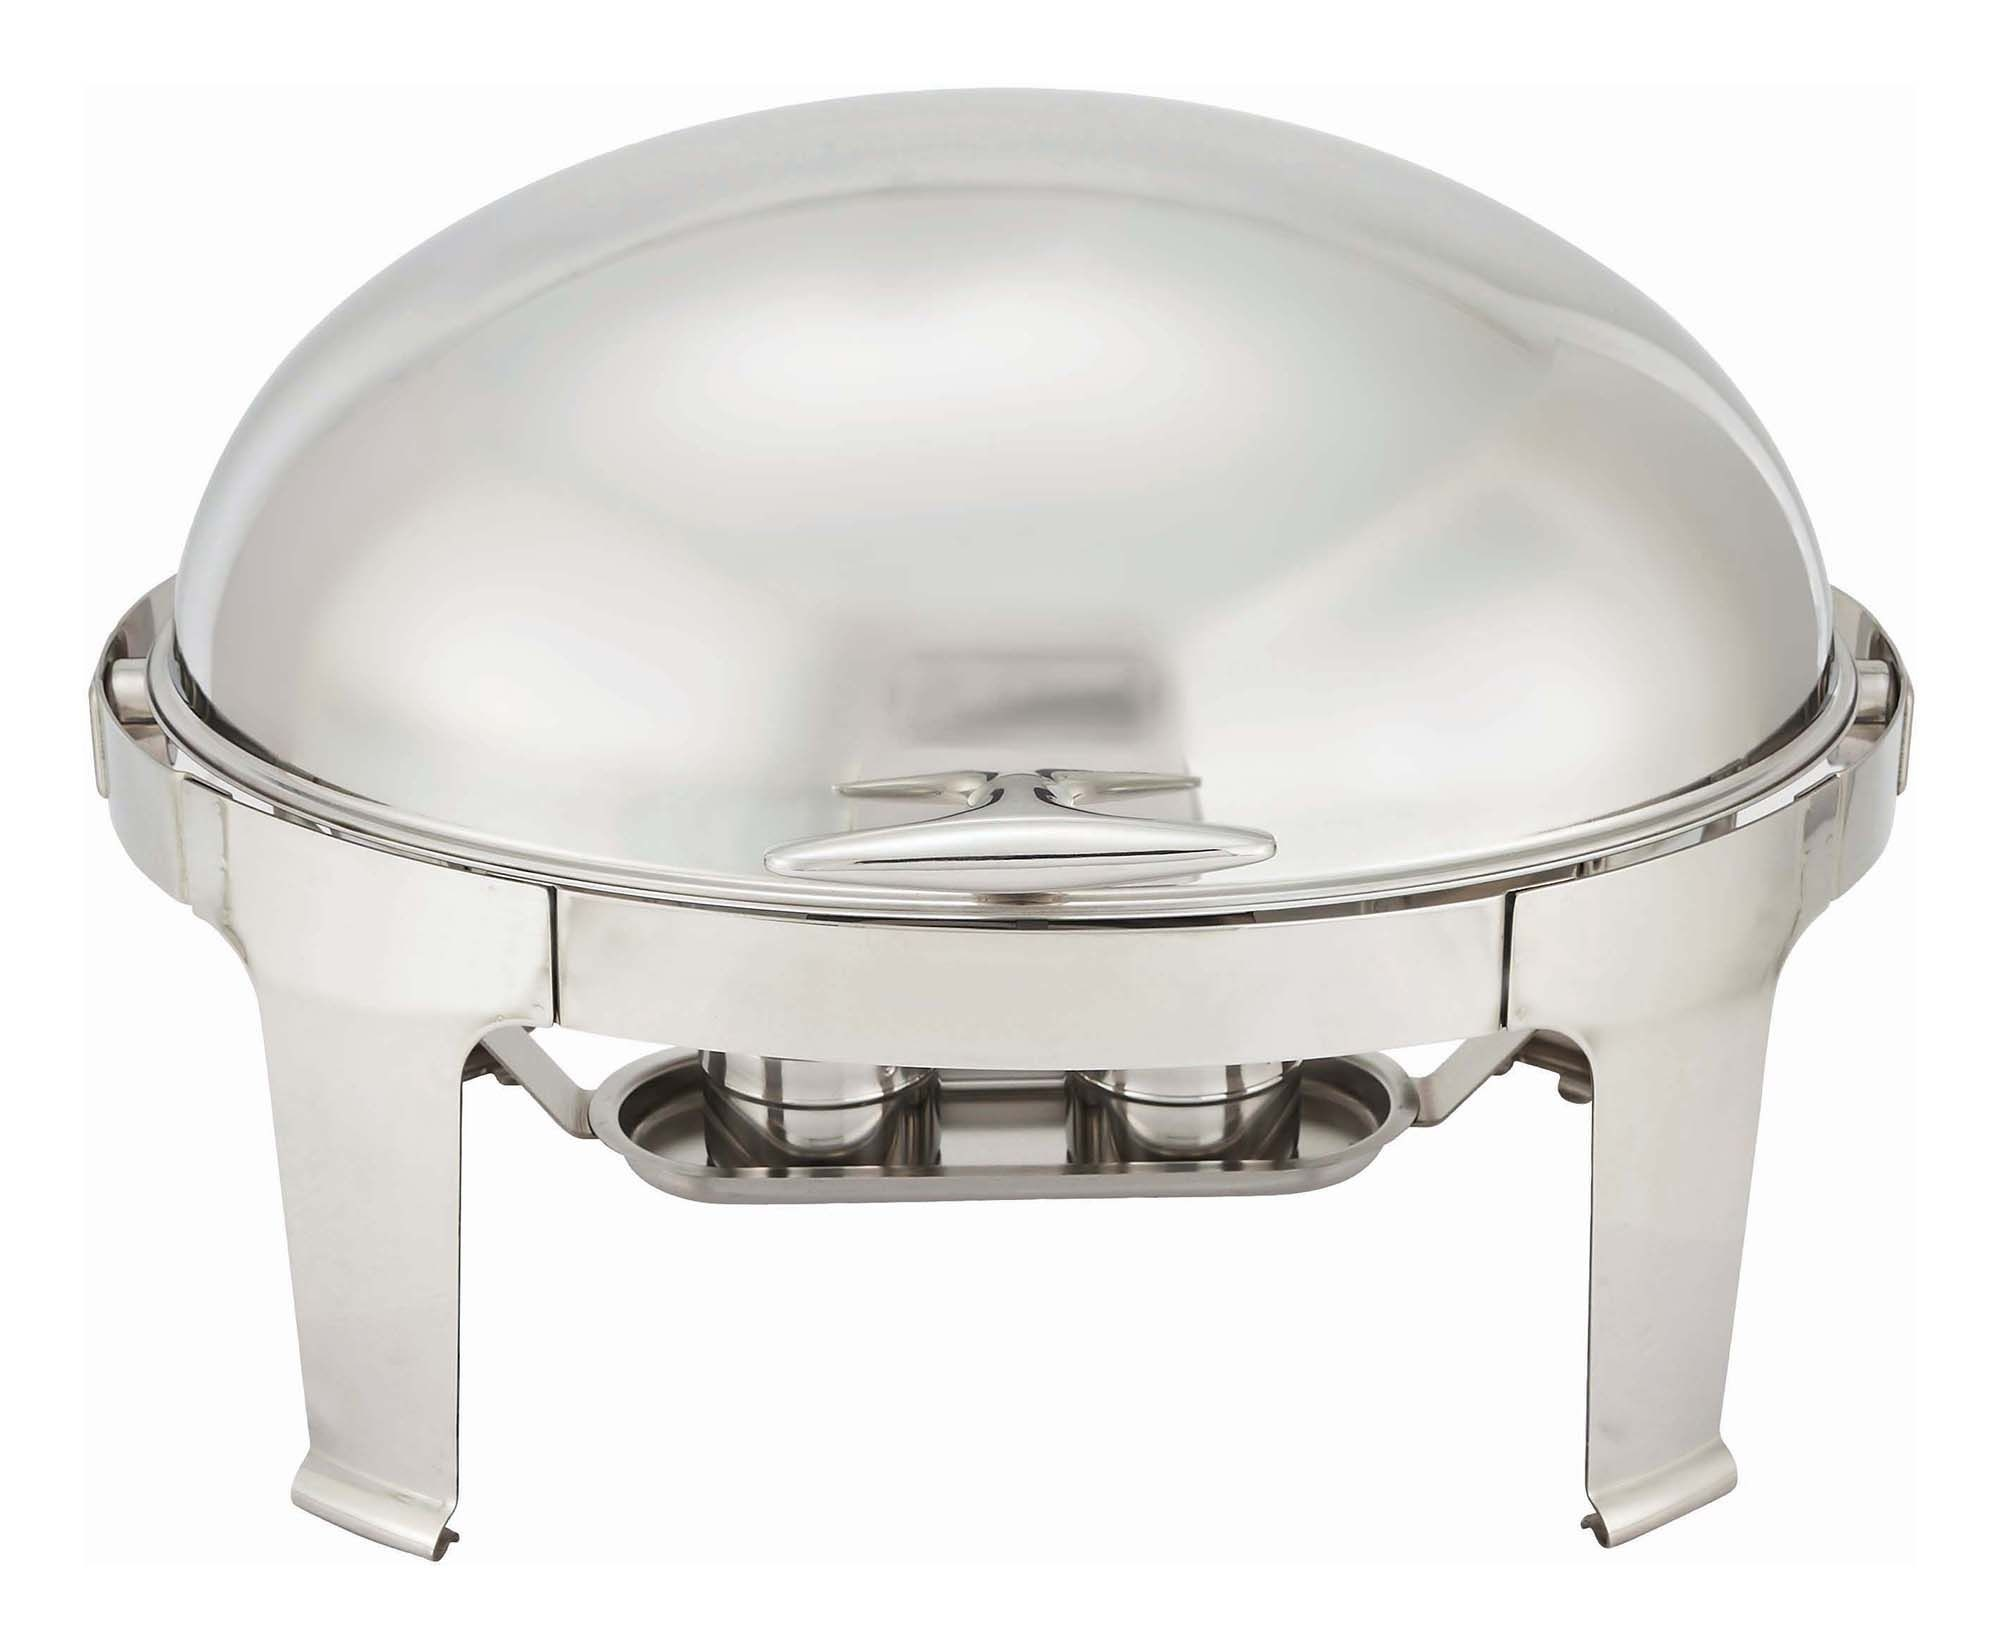 Winco 603 Madison Oval Roll Top Chafer 8 Qt.